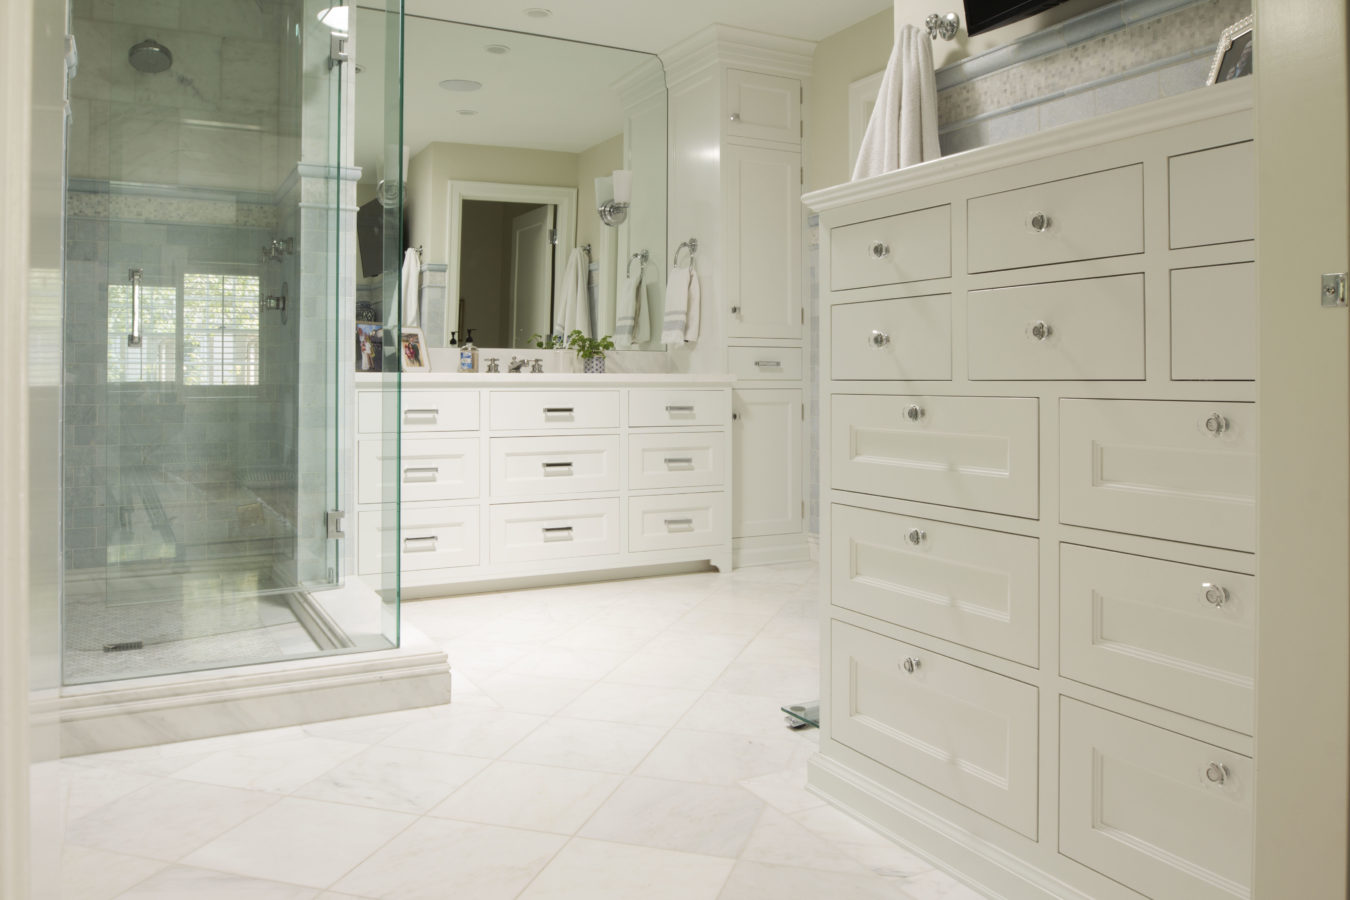 Transitional Bathroom Project 6 - Teerlink Cabinet